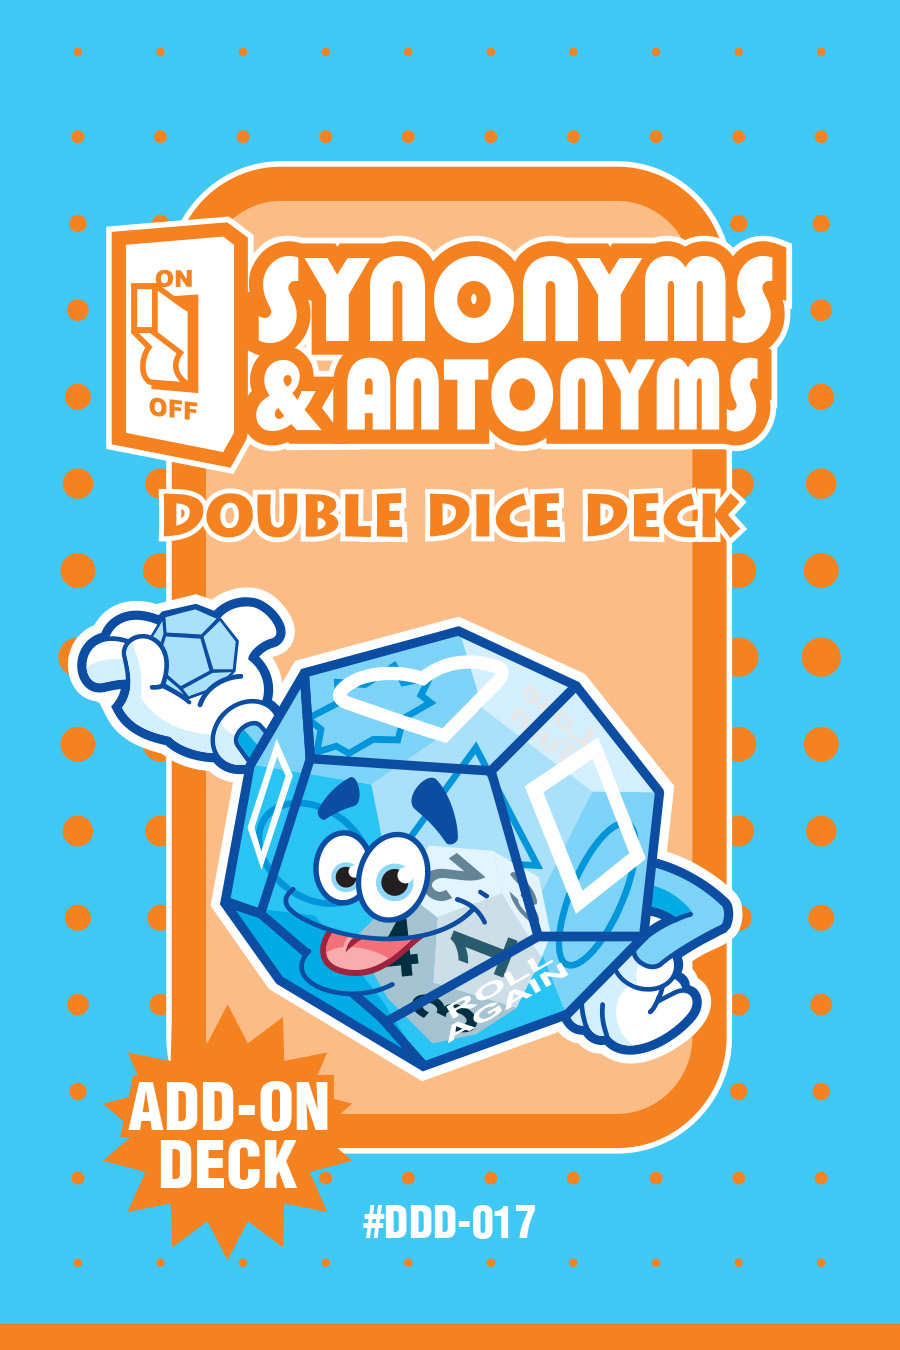 Synonyms & Antonyms (Double Dice Deck) - Blink Session